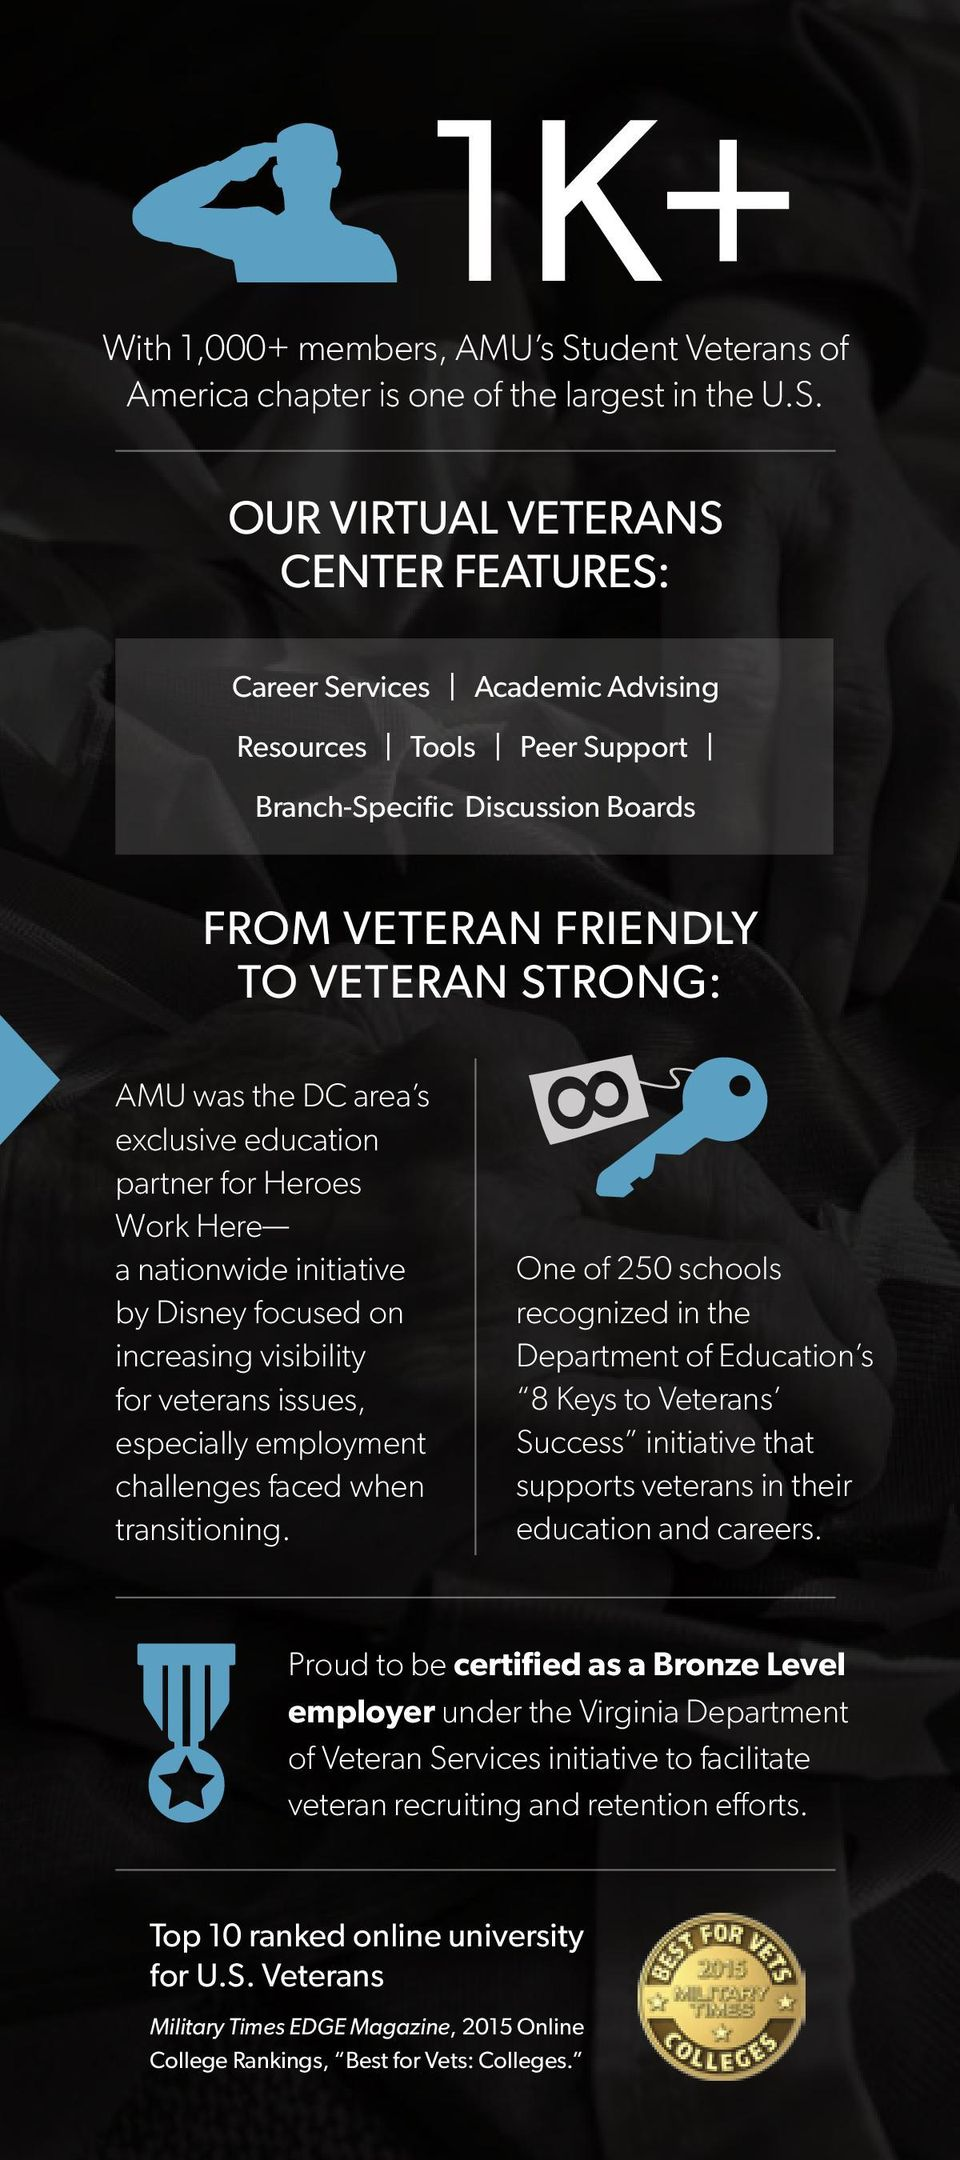 FROM VETERN FRIENDLY TO VETERN STRON: M was the DC area s exclusive education partner for Heroes Work Here a nationwide initiative by Disney focused on increasing visibility for veterans issues,